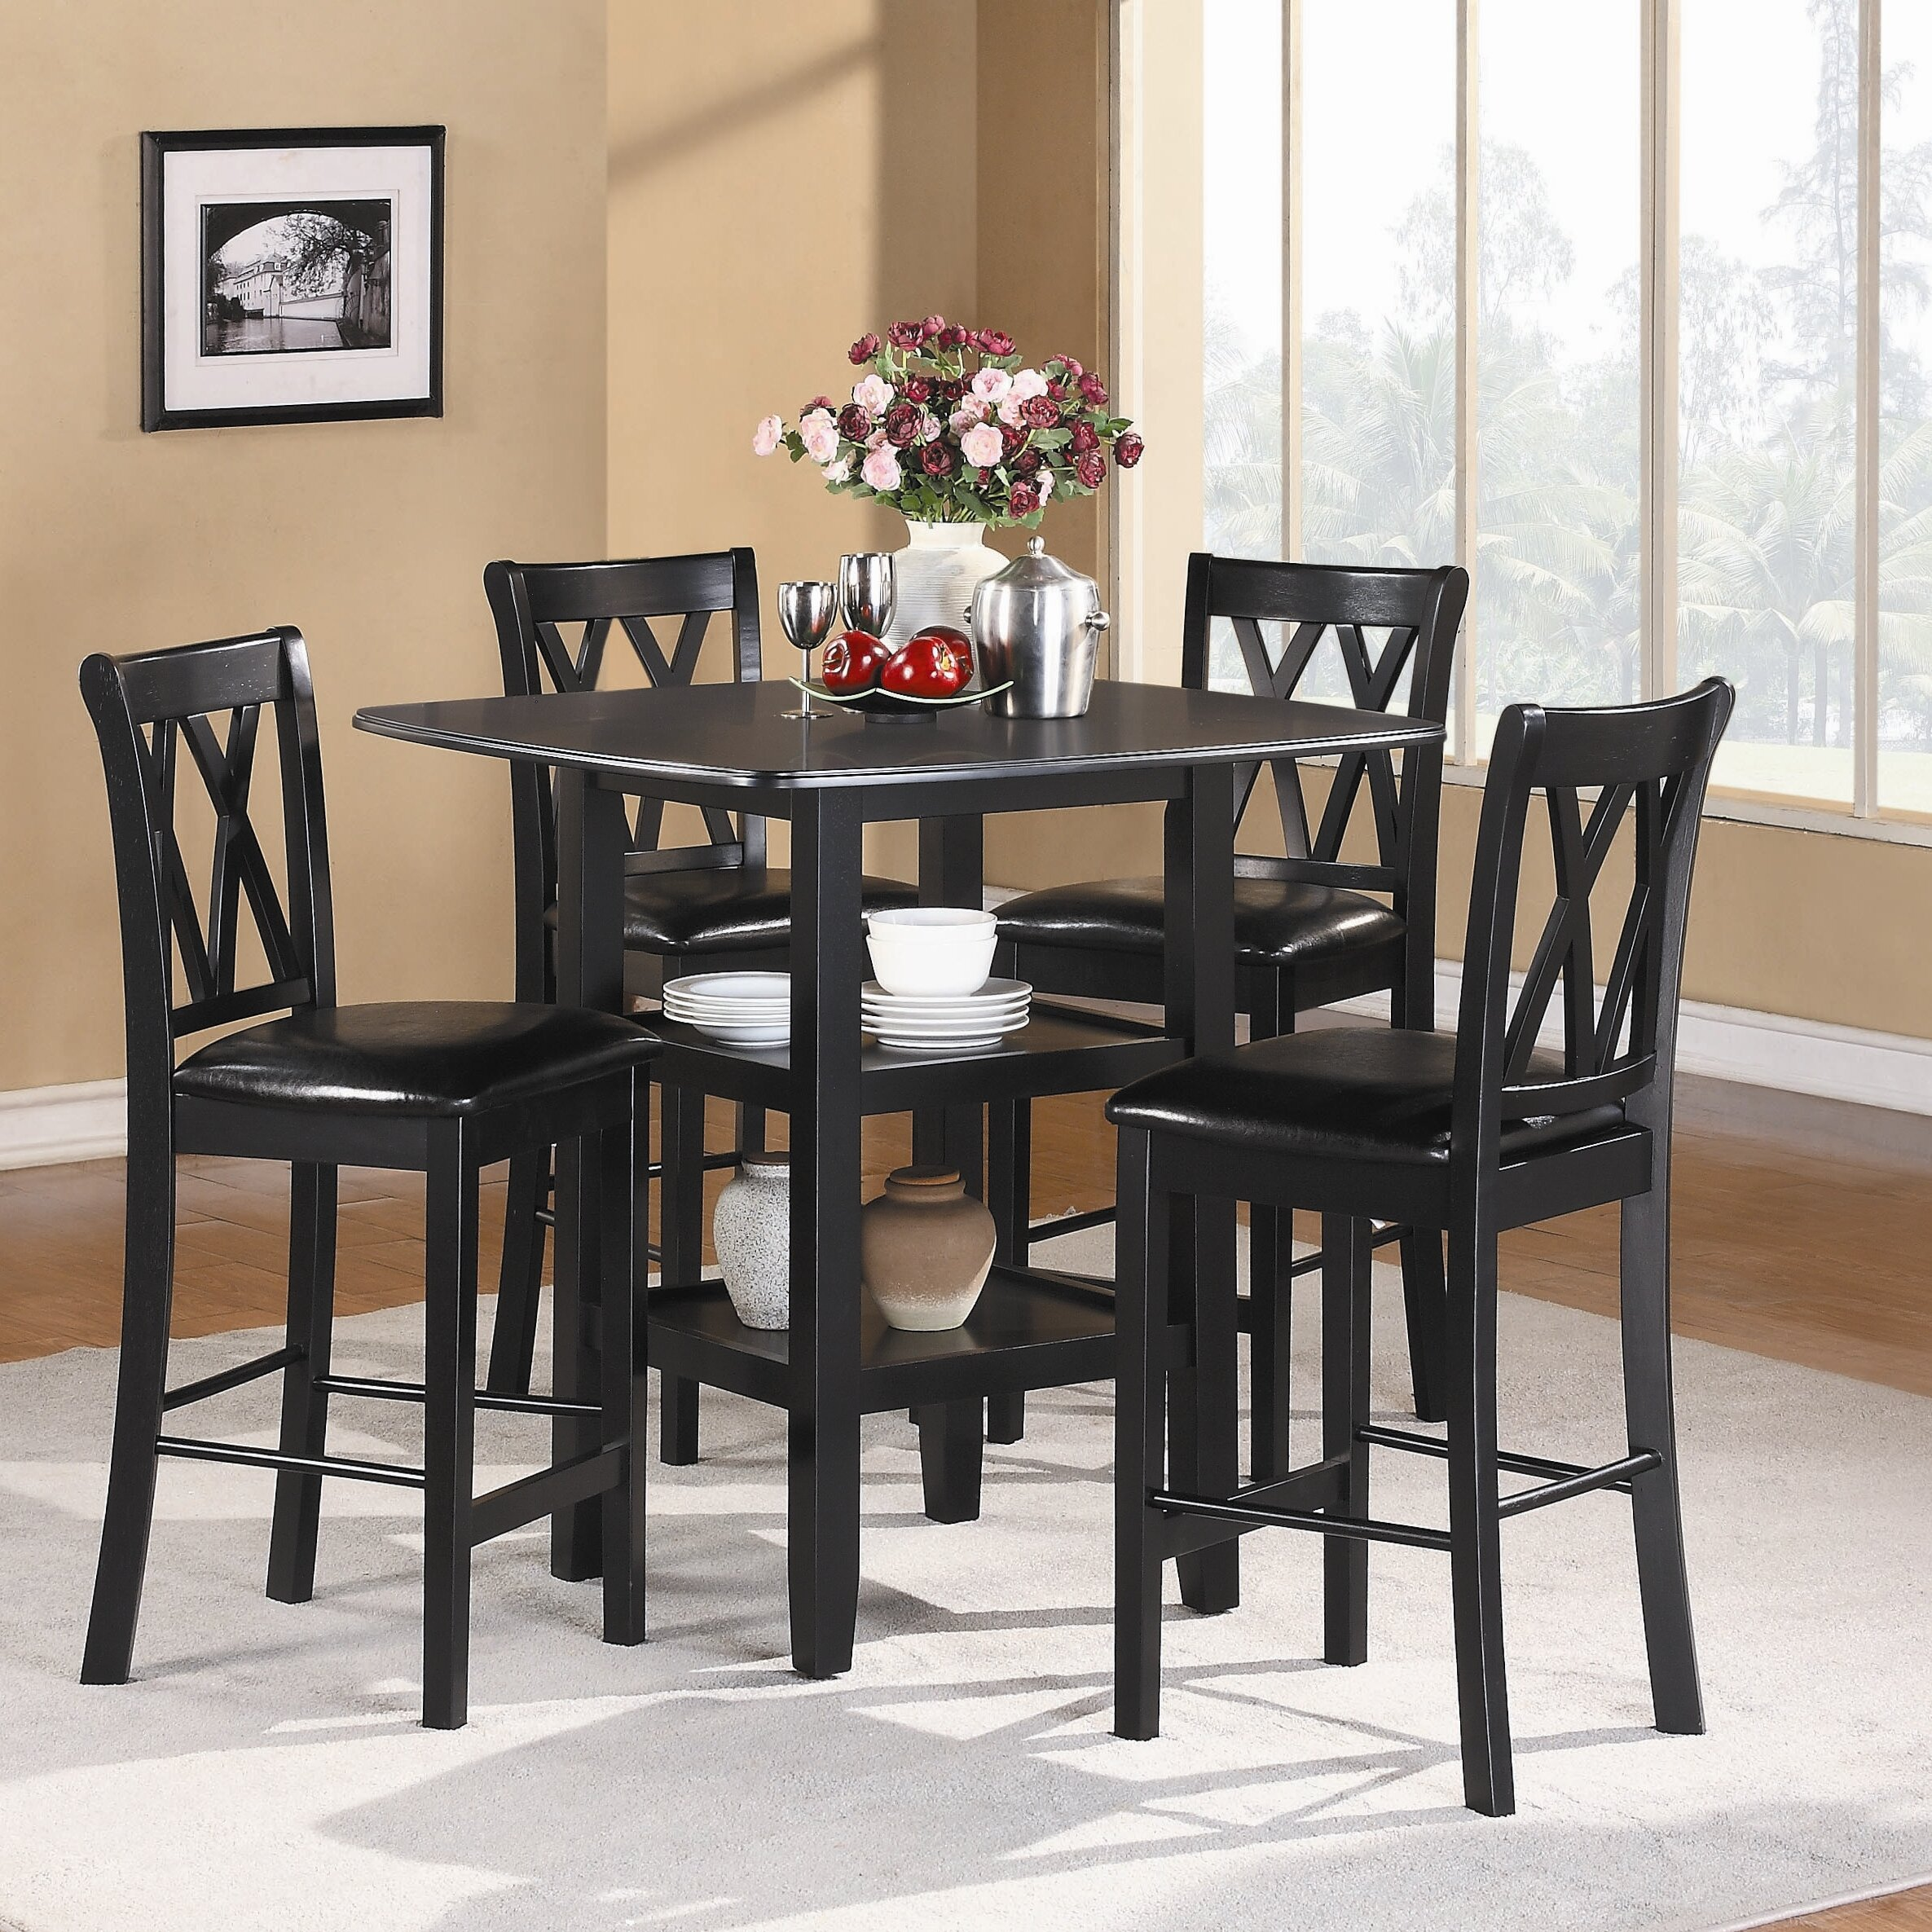 Woodhaven hill norman 5 piece counter height dining set for High top dinette sets